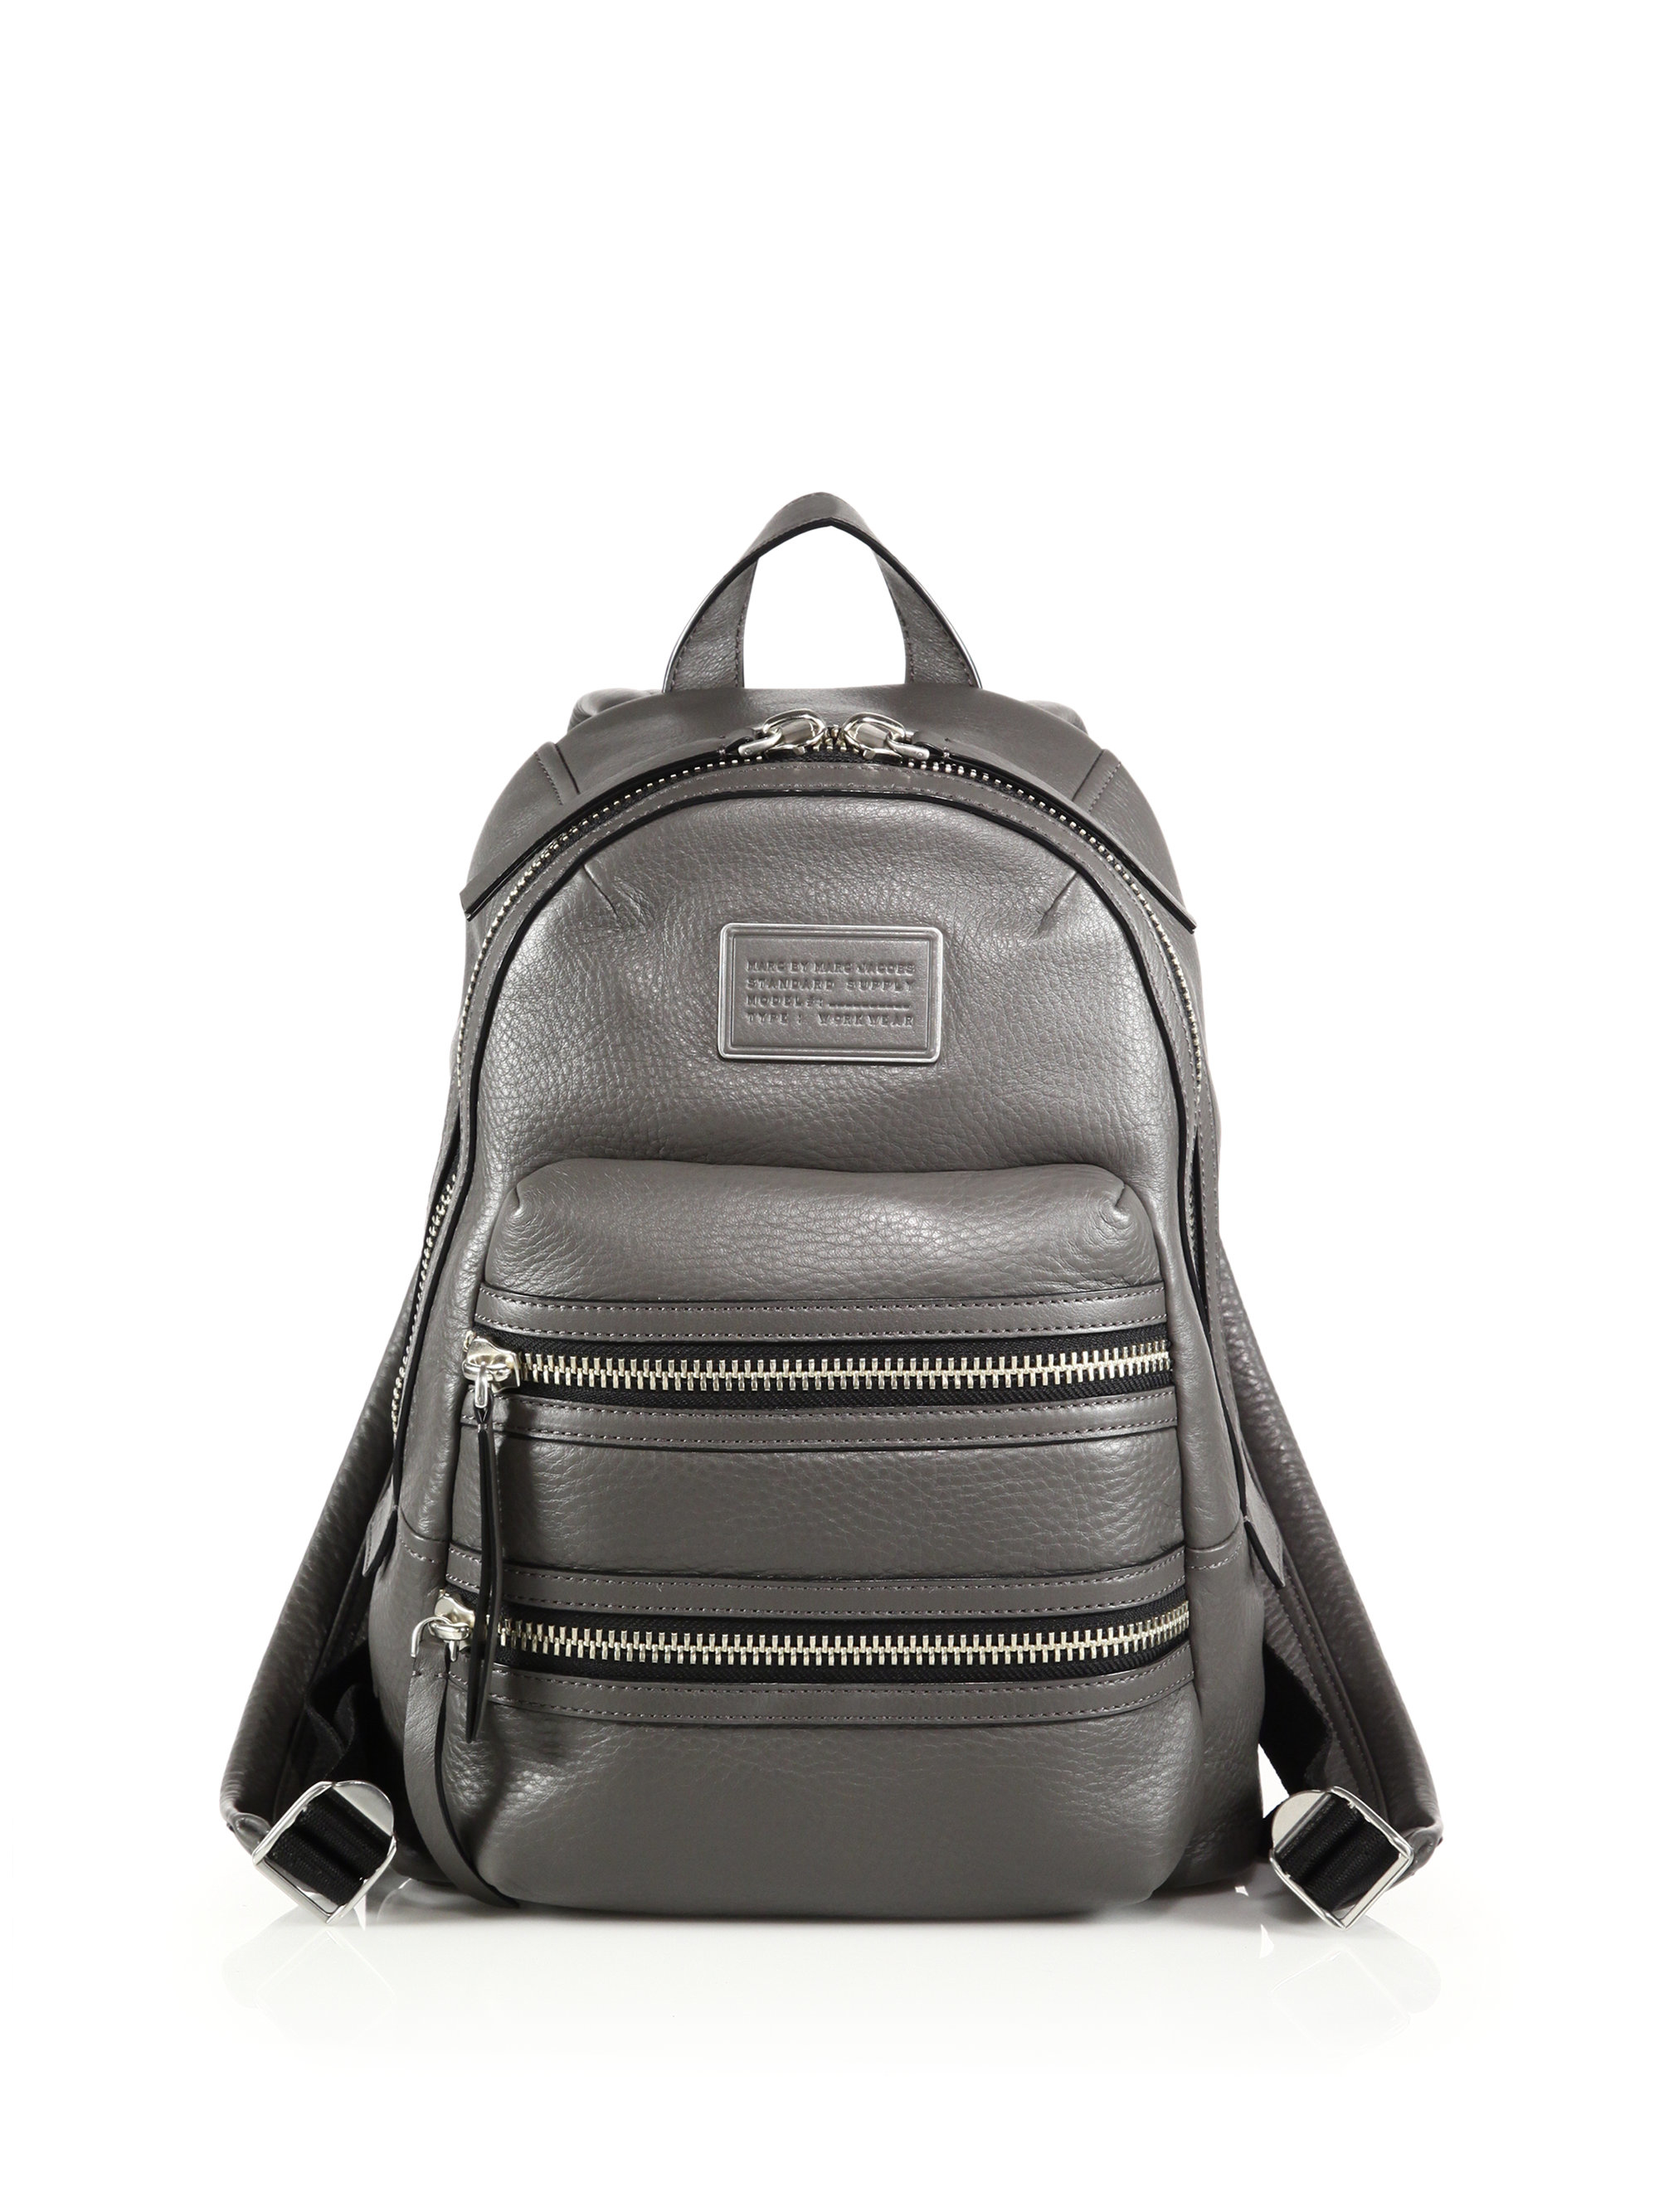 marc by marc jacobs domo leather biker backpack in gray lyst. Black Bedroom Furniture Sets. Home Design Ideas